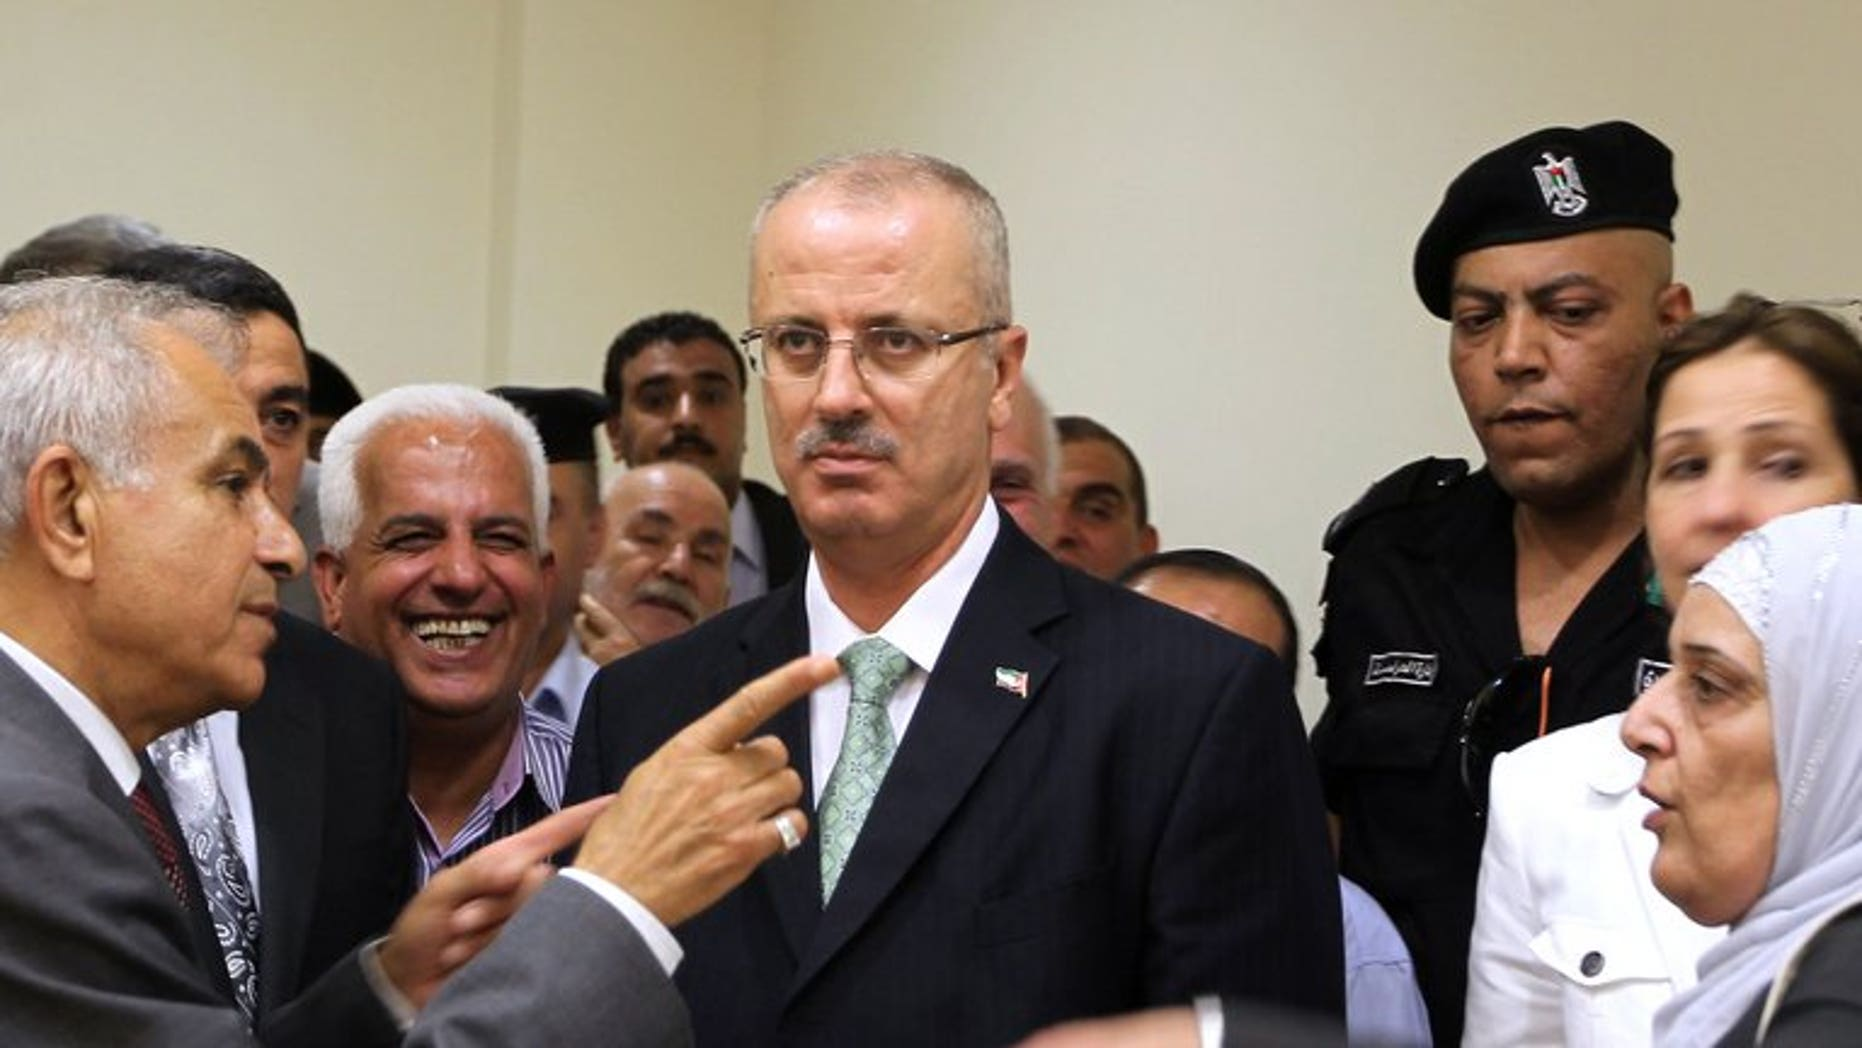 Newly appointed Palestinian prime minister Rami Hamdallah visits the West Bank city of Nablus on June 4, 2013.